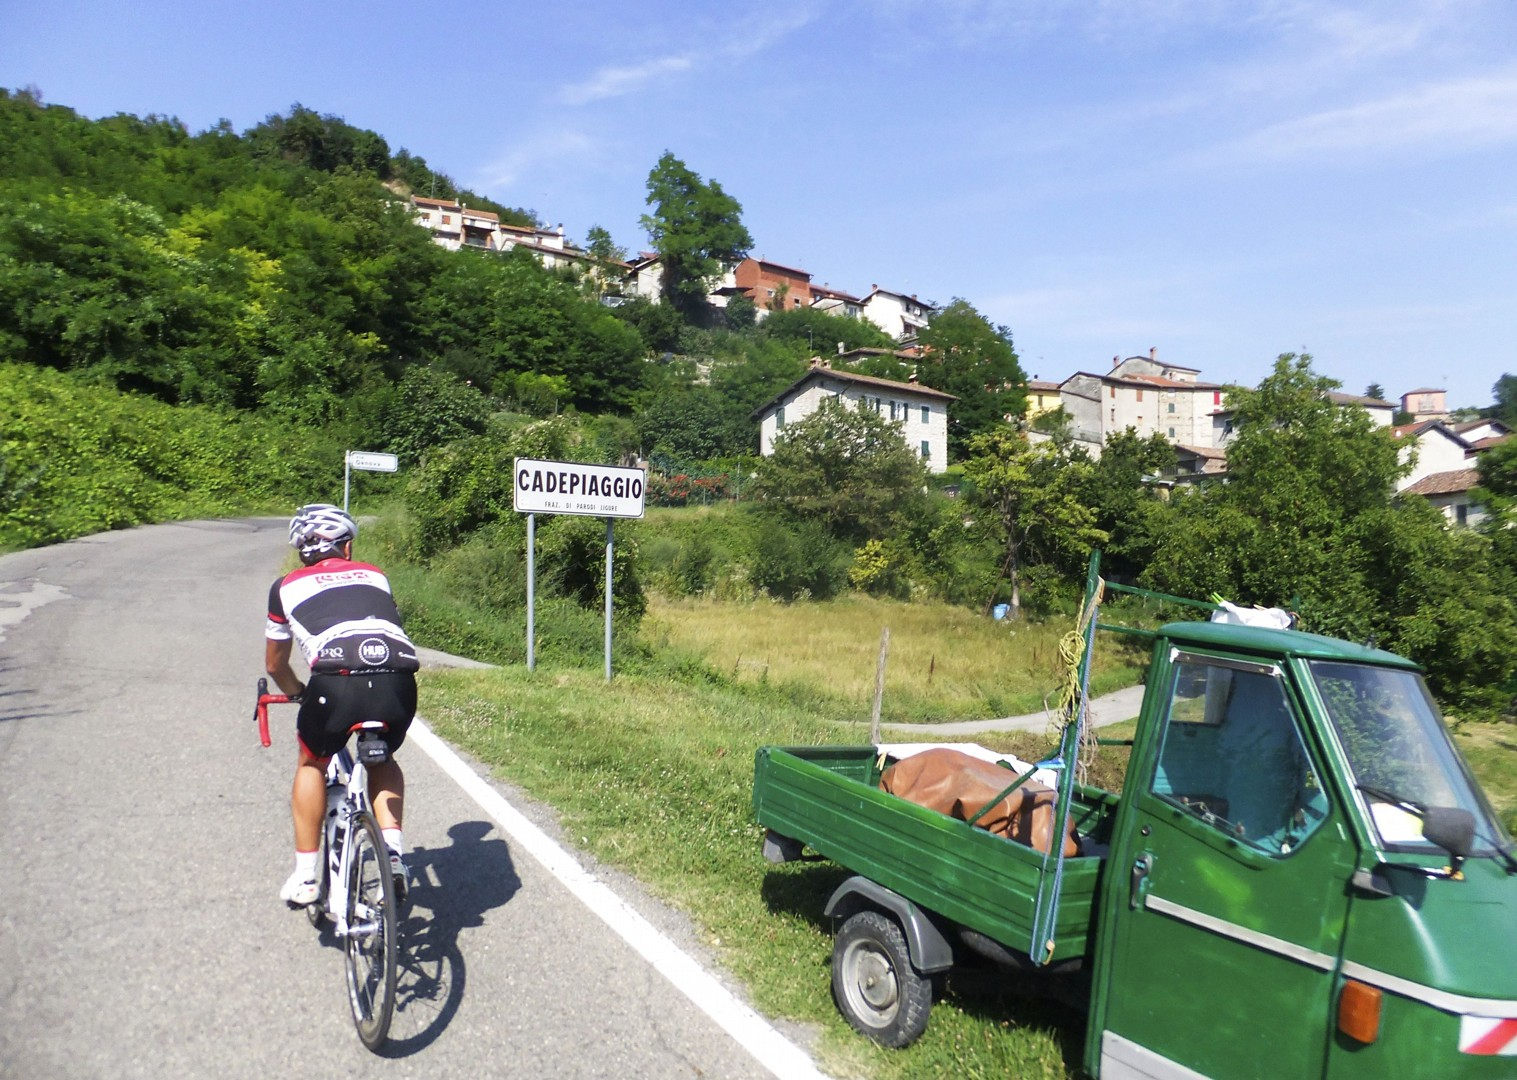 guided-road-cycling-holiday-italy-piemonte-la-strada-del-vino.jpg - NEW! Italy - Piemonte - La Strada del Vino - Road Cycling